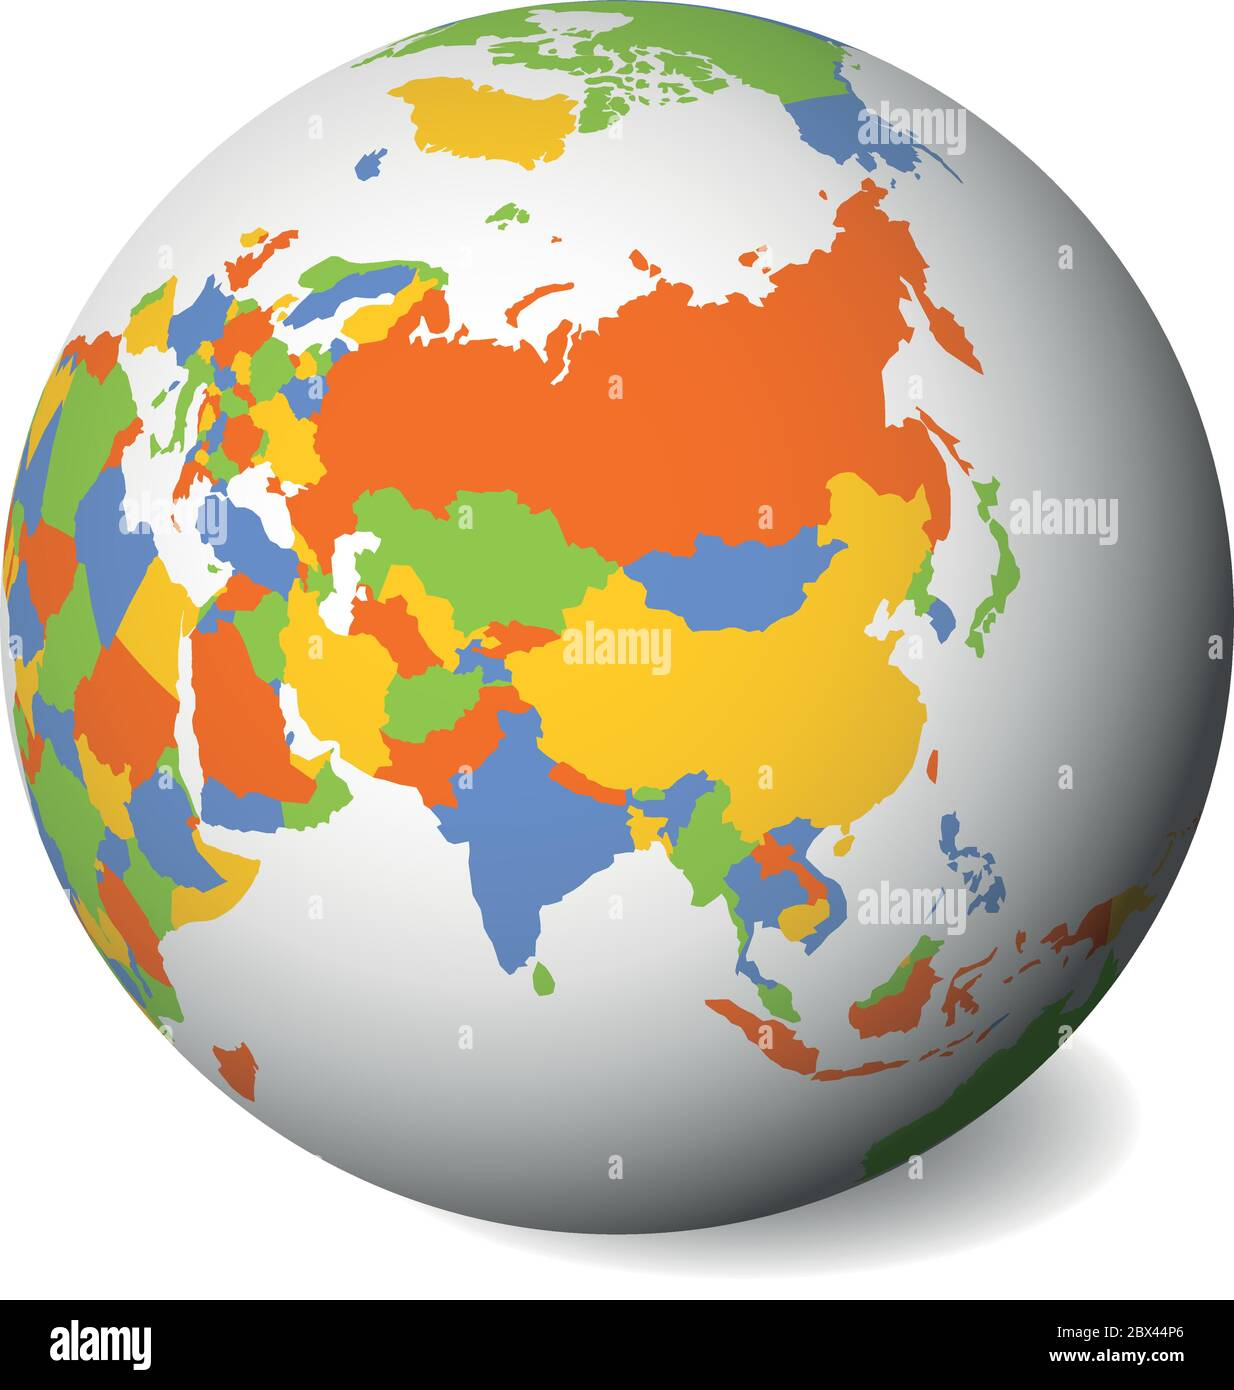 Picture of: Blank Political Map Of Asia 3d Earth Globe With Black Outline Map Vector Illustration Stock Vector Image Art Alamy